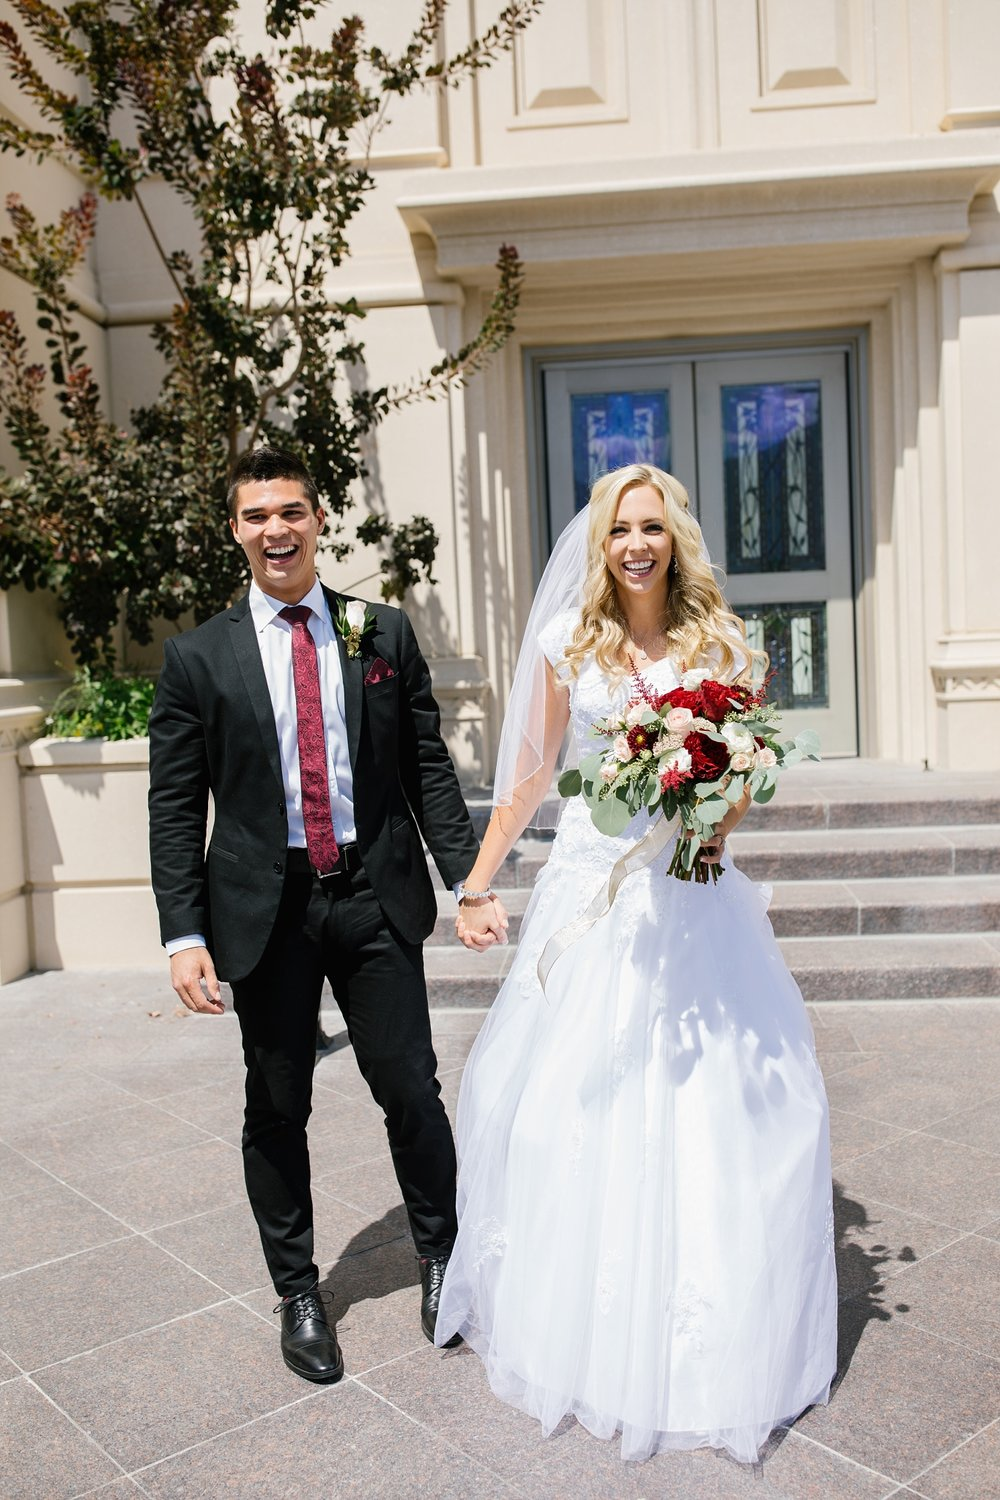 HannahChaseWedding-18_Lizzie-B-Imagery-Utah-Wedding-Photographer-Bridal-Photography-Payson-Utah-Temple-Clarion-Gardens-Catering-and-Events-Center.jpg